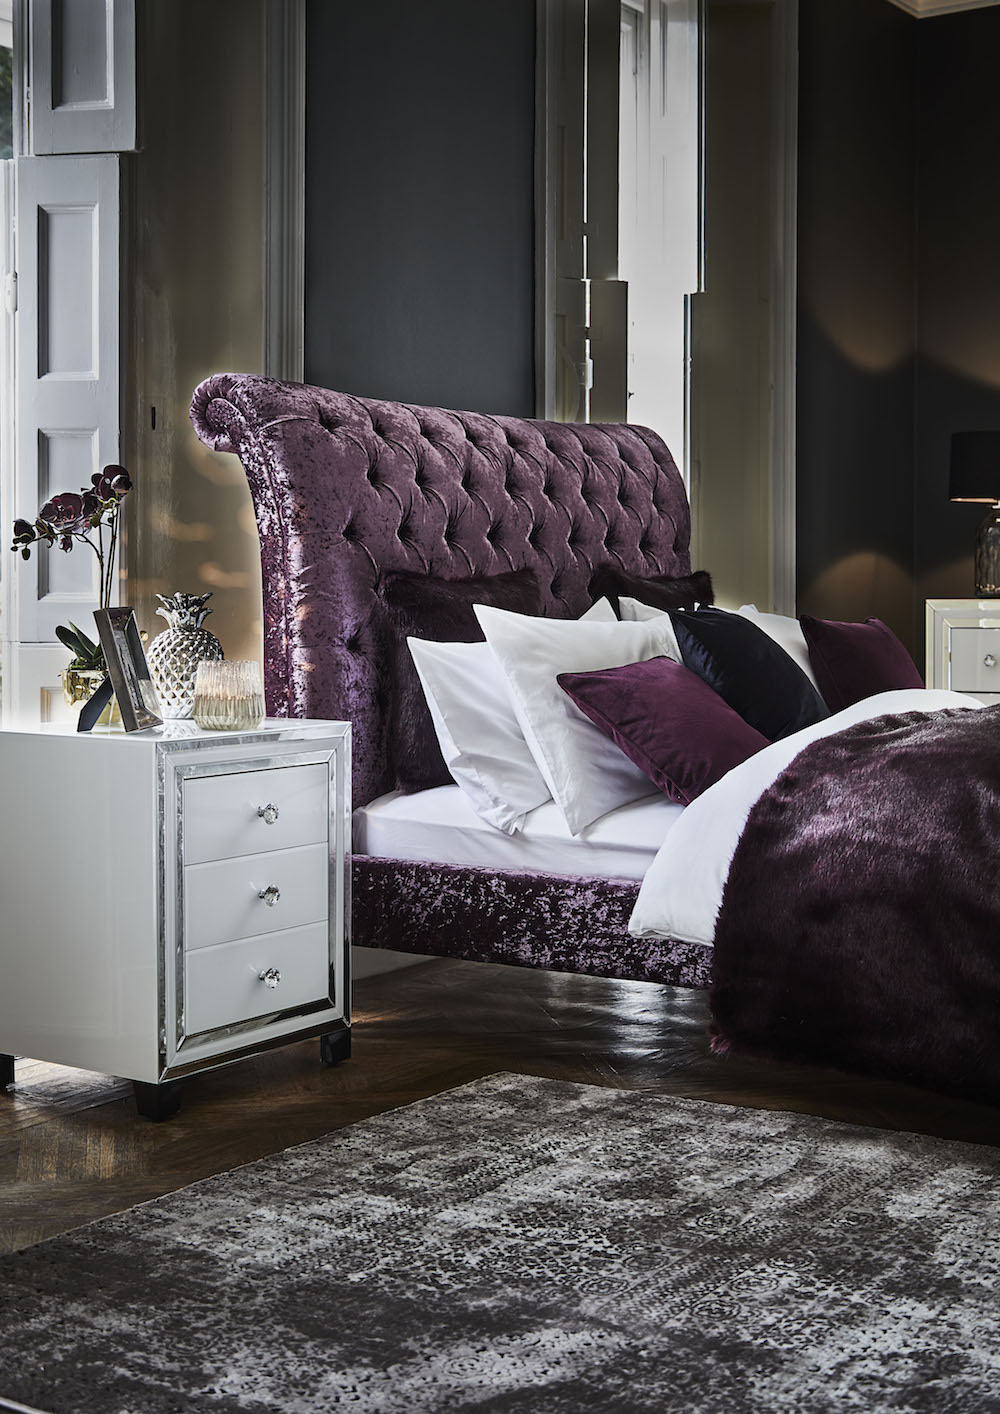 Plush Deco - Odeon Bed £1175, Krystal 3 Drawer Bedside £355, Silver Ceramic Pineapple Table Lamp £35, Aubergine Faux Fur Throw £199.